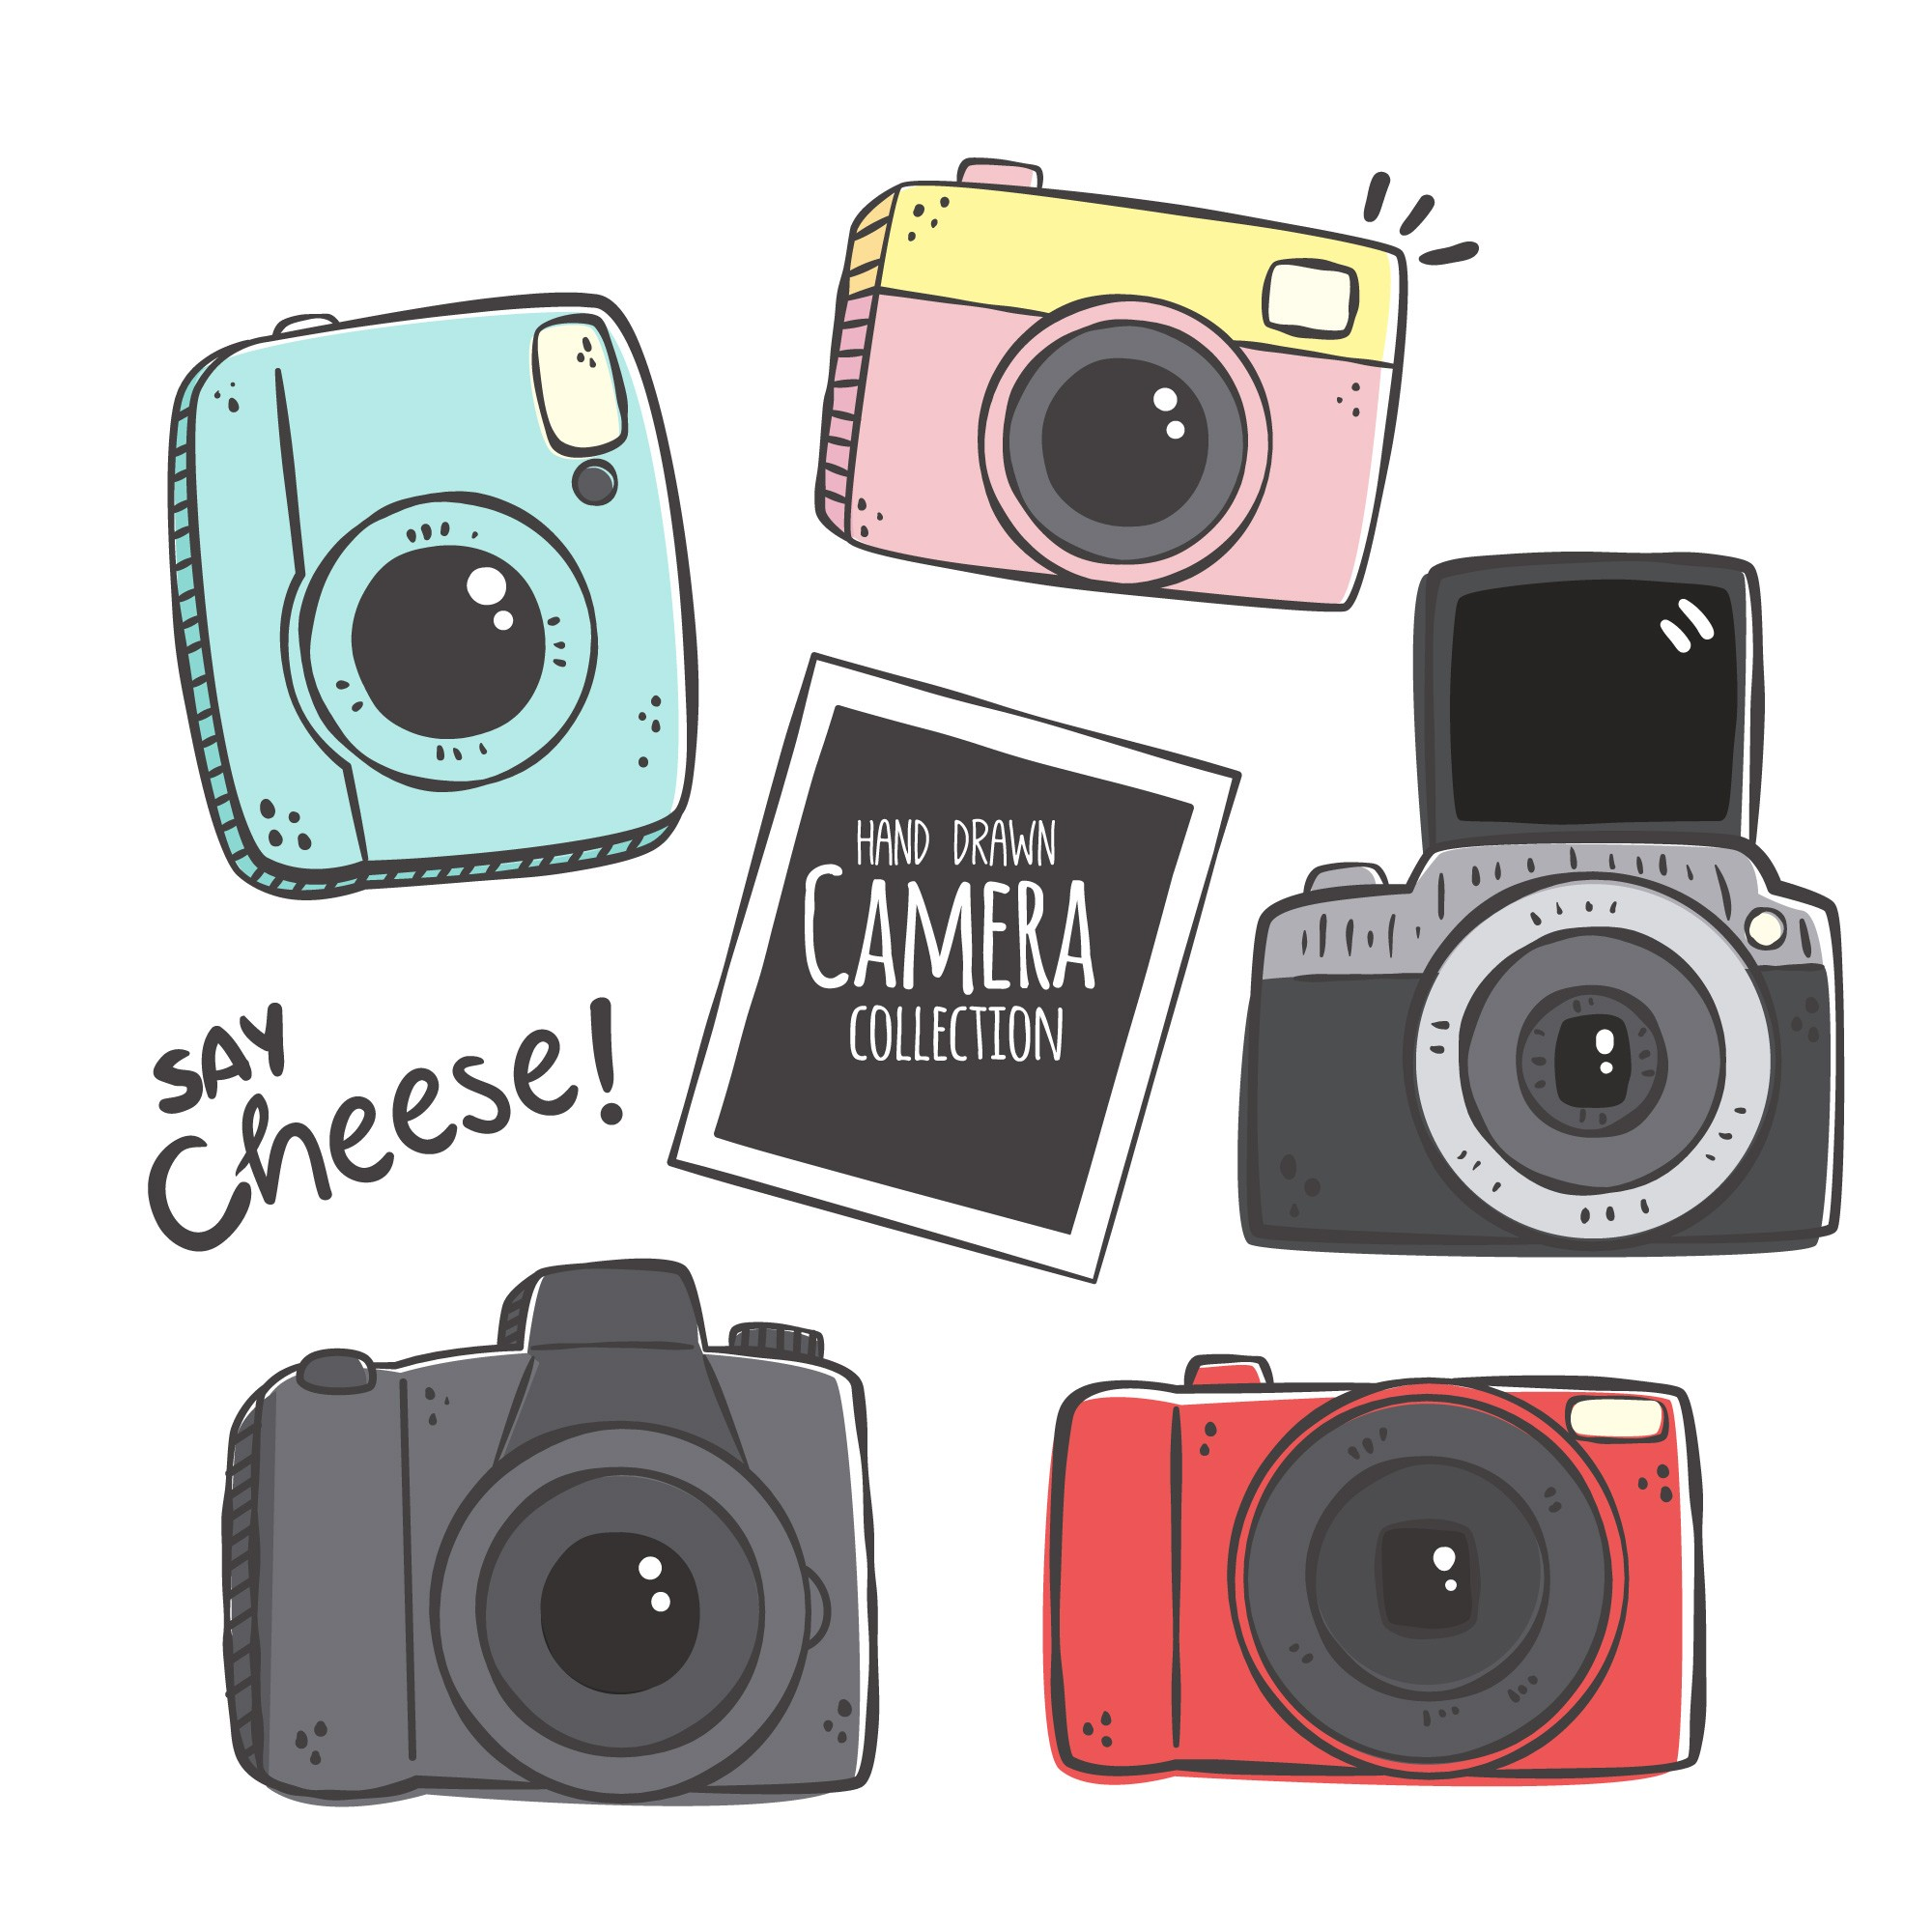 Hand drawn camera collection